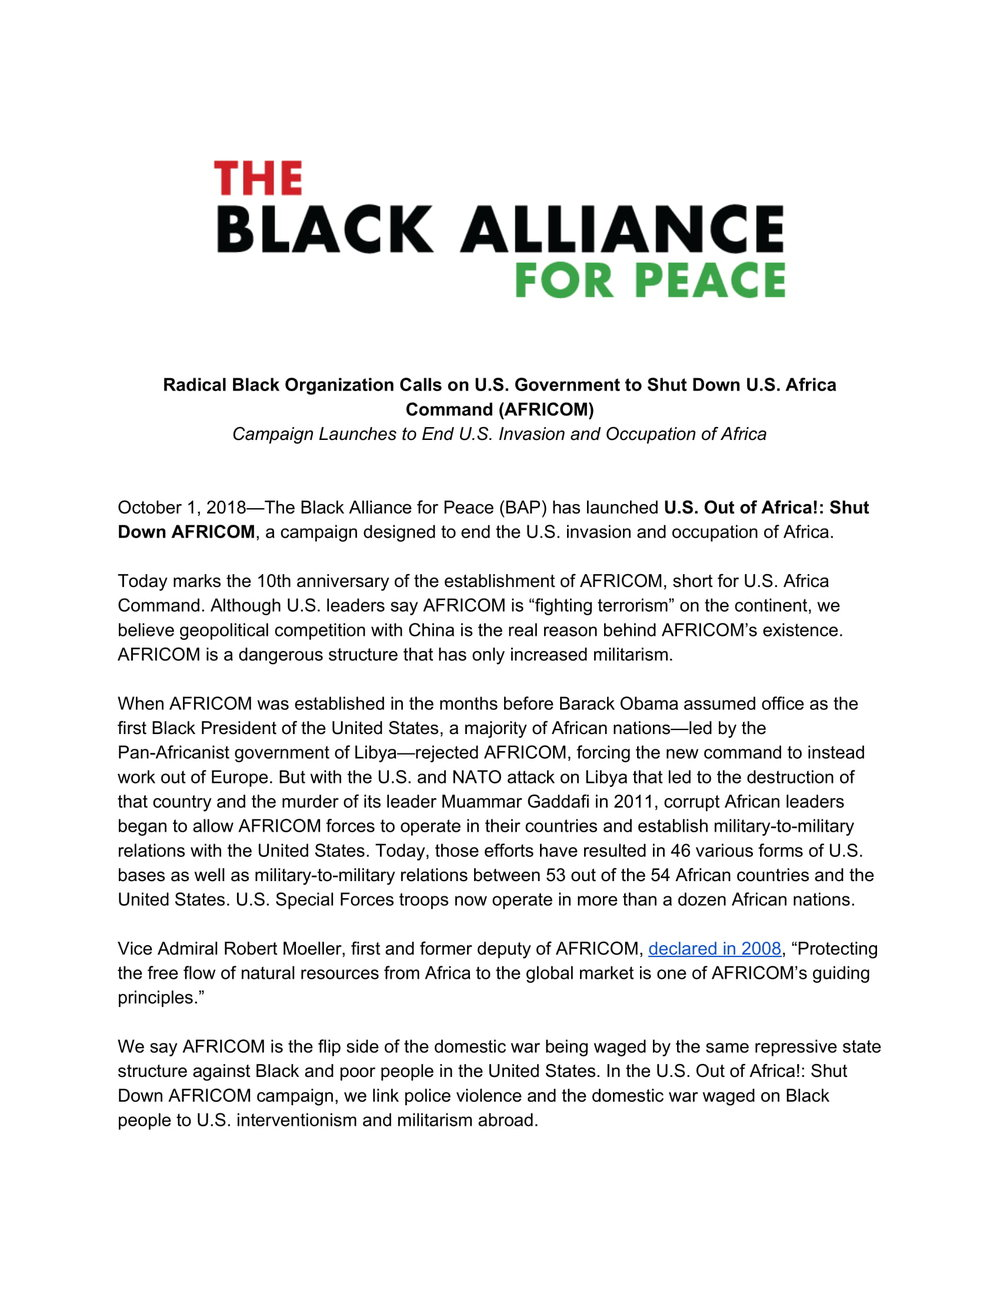 Black Alliance for Peace Calls on U.S. Government to Shut Down U.S. Africa Command (AFRICOM)